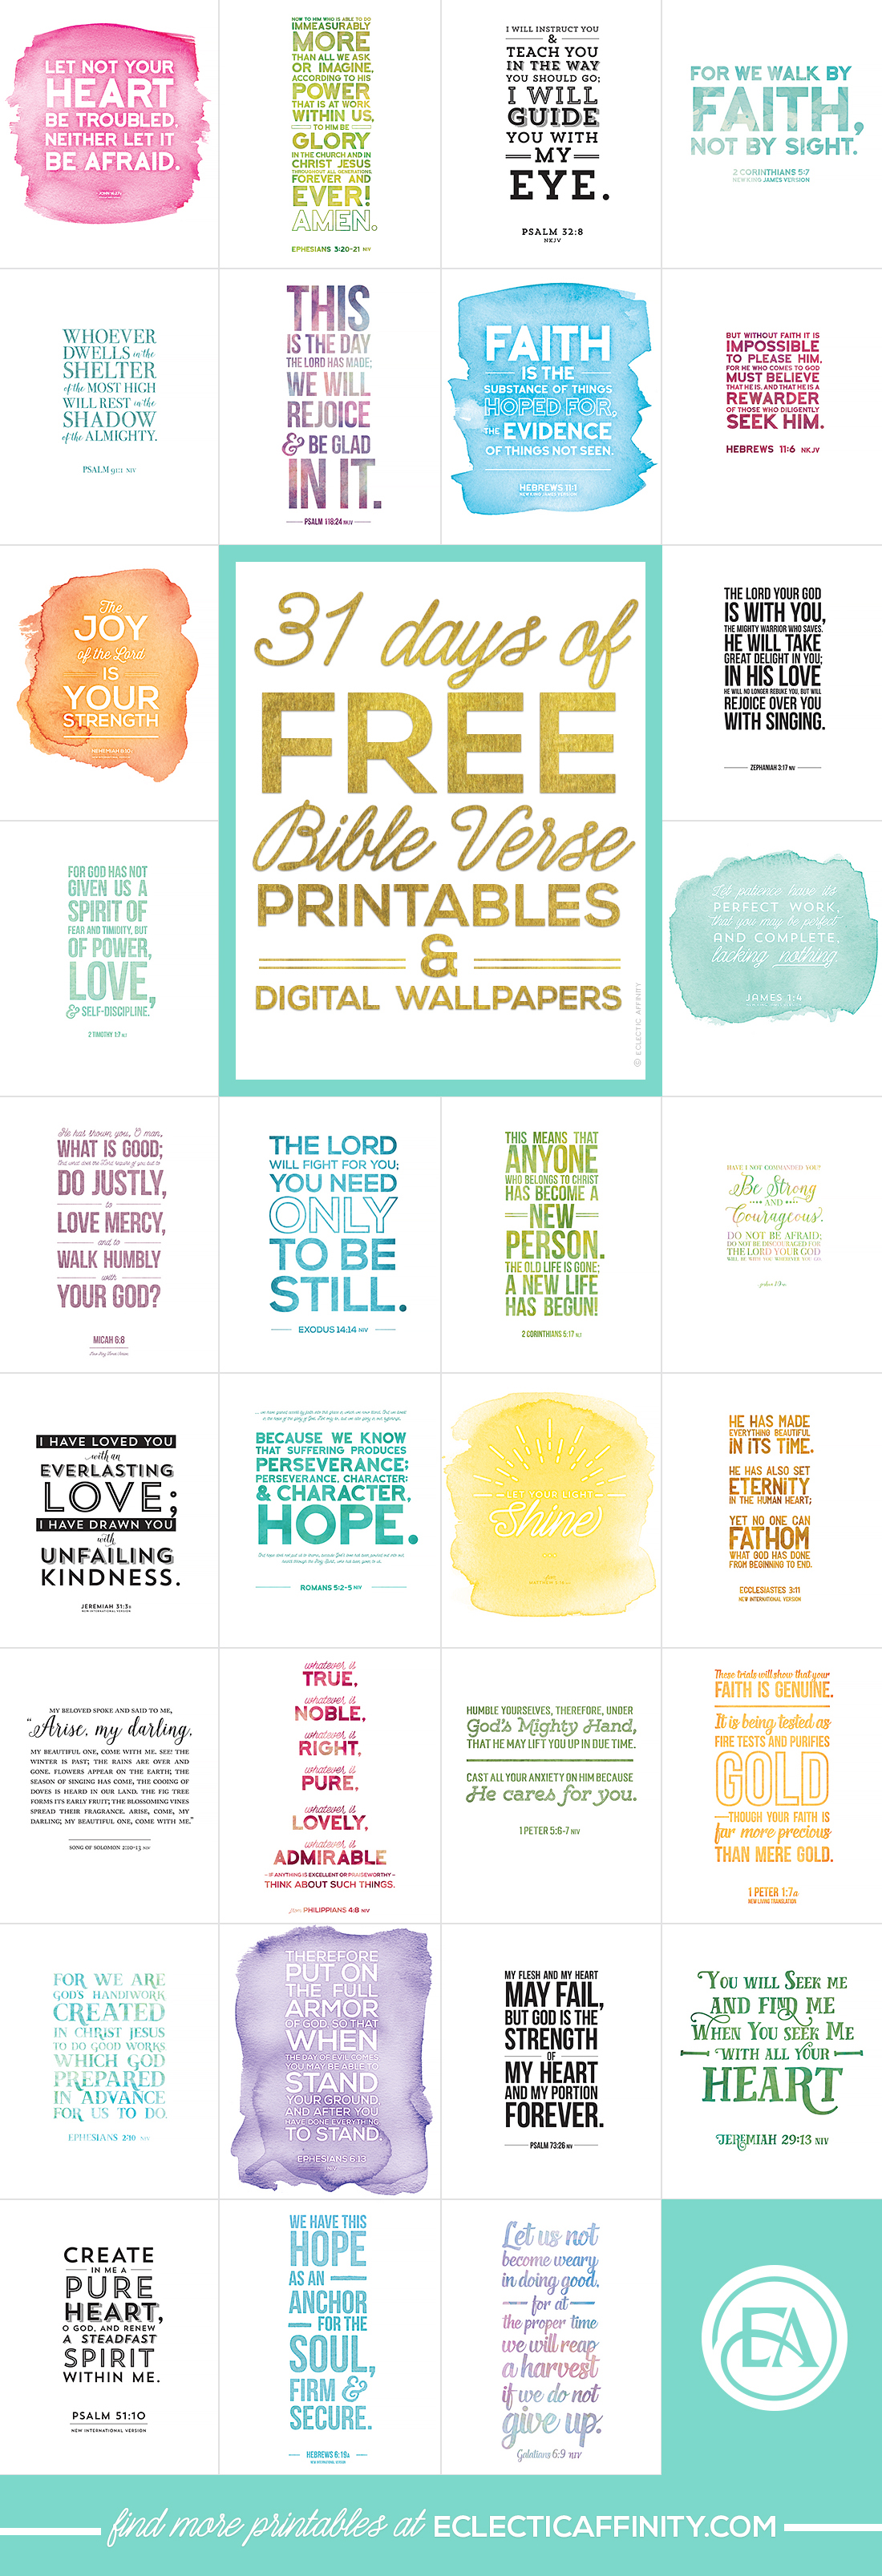 31 Days of Reminders for Your Soul + a story of faith // Bible verse printables & matching digital wallpapers | Eclectic Affinity